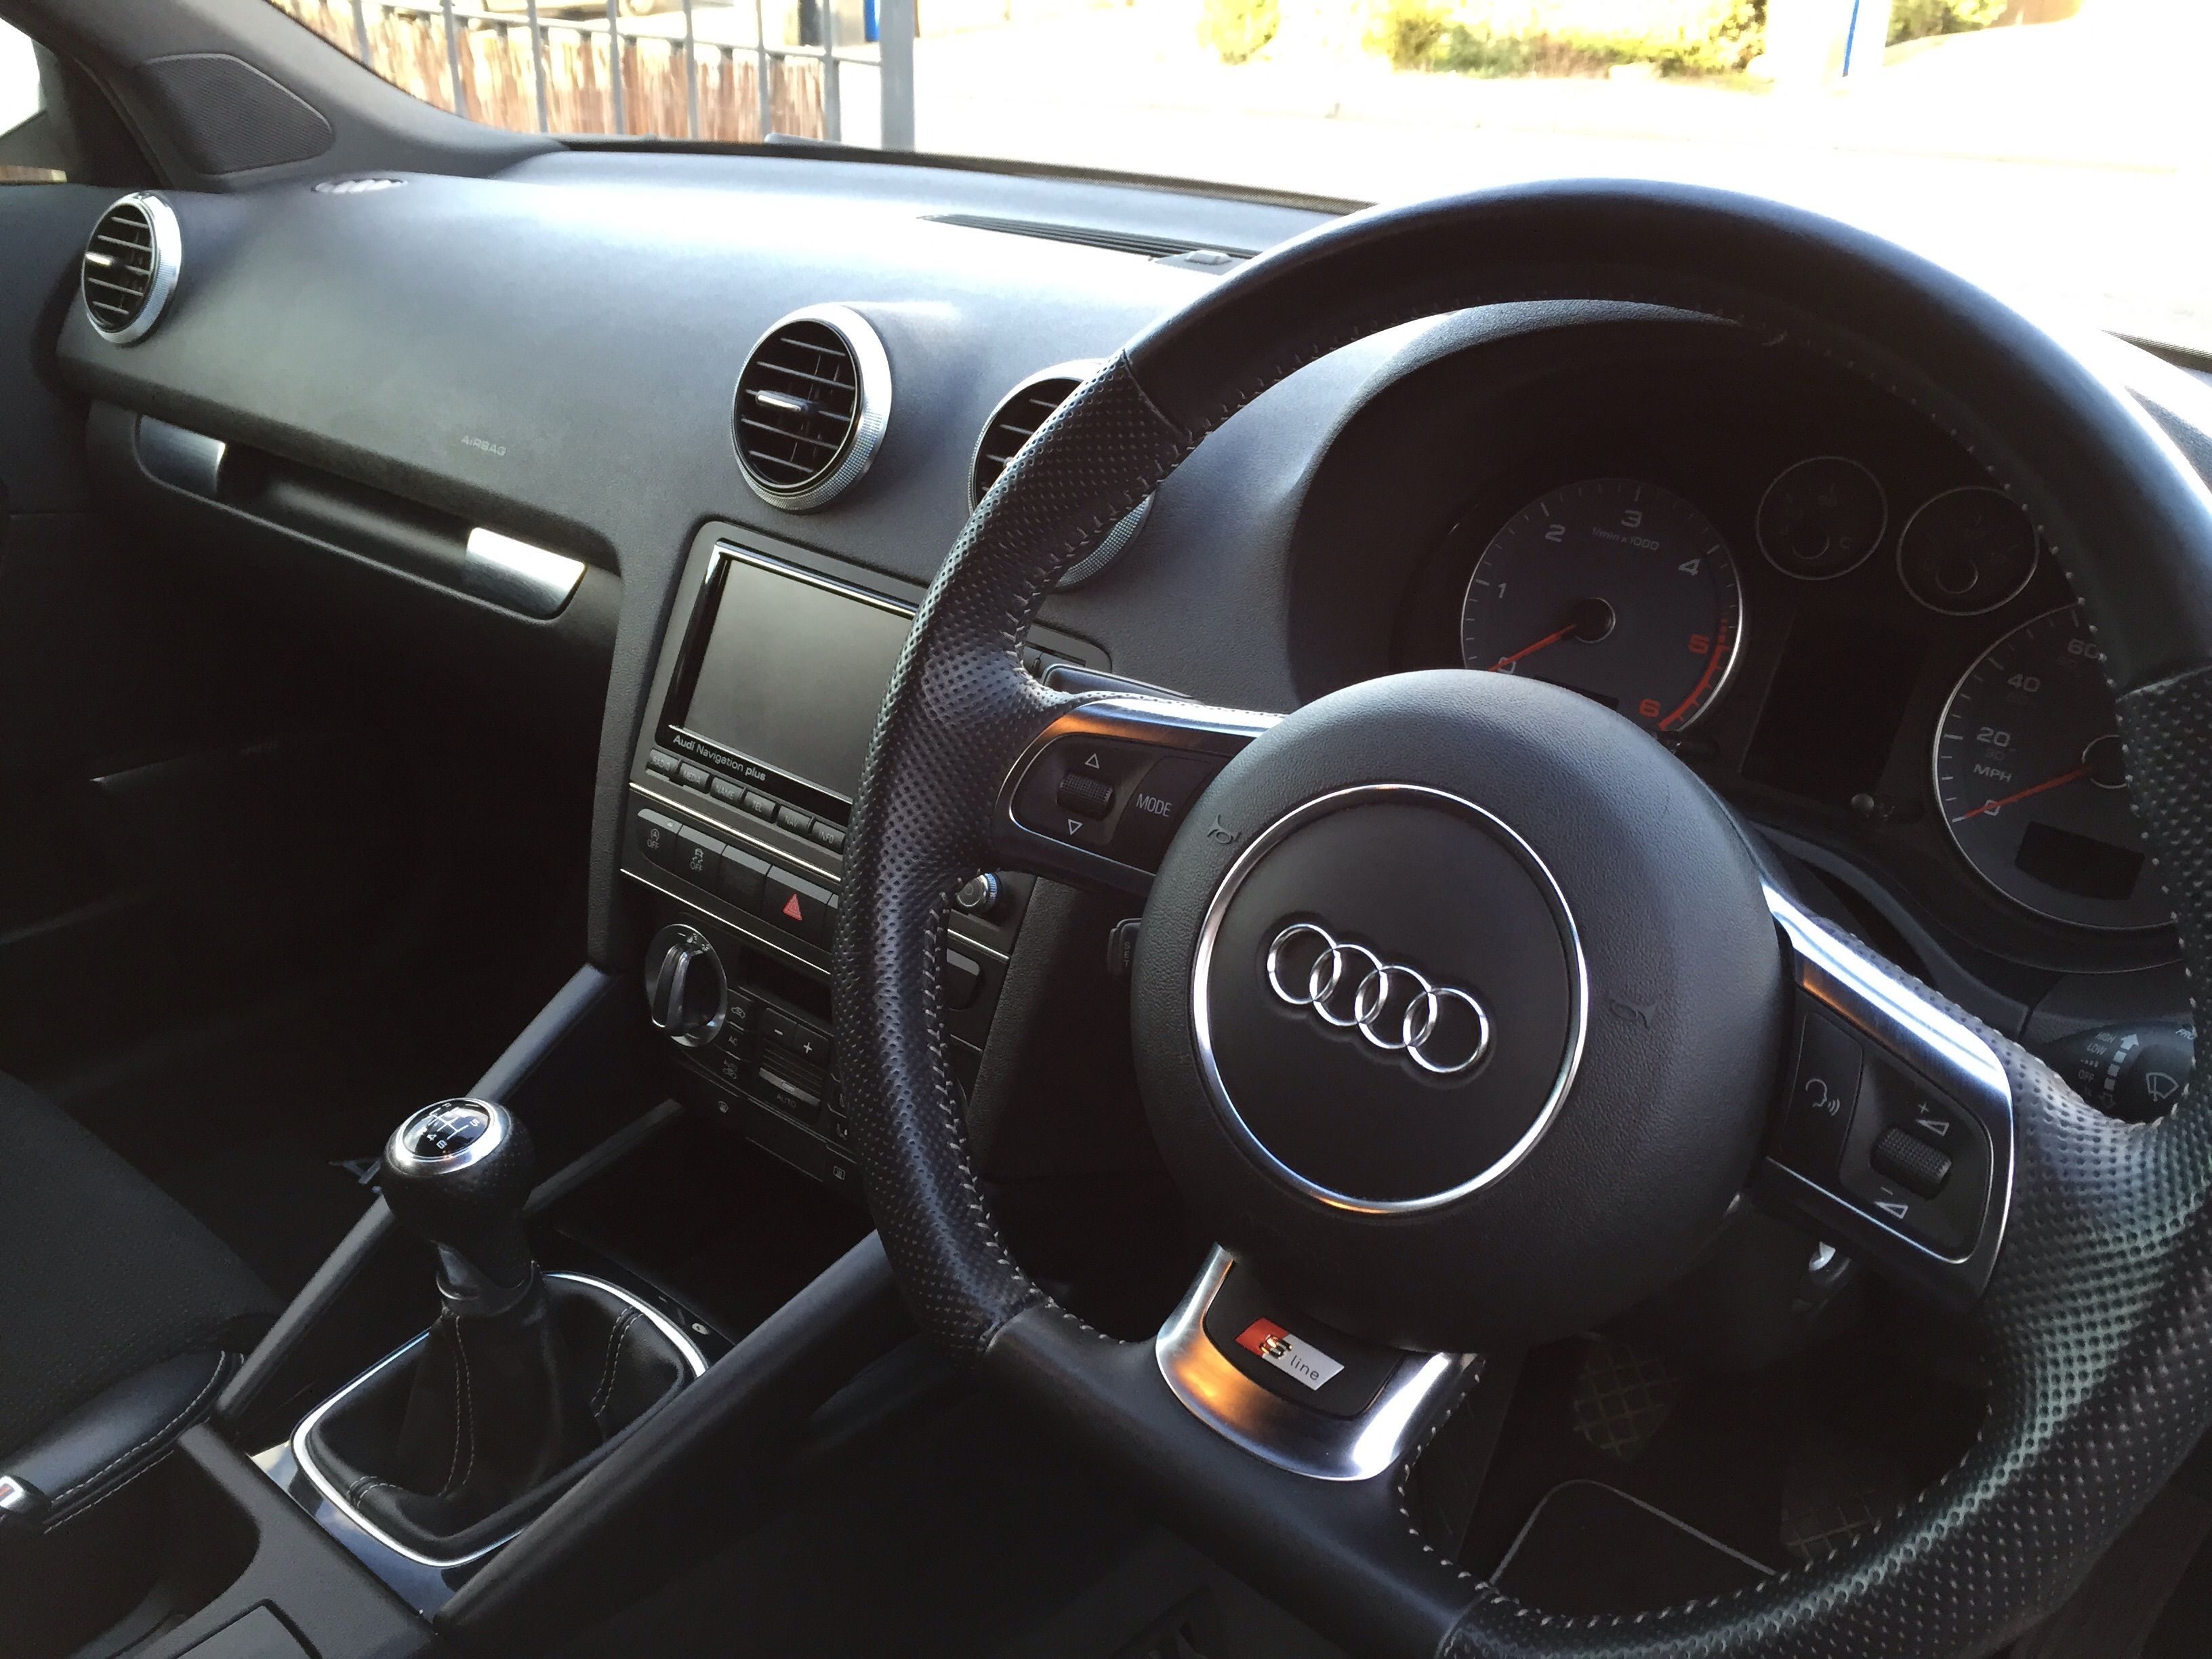 My 2010 Audi A3 Sportback S-line Black Edition with some minor mods ...